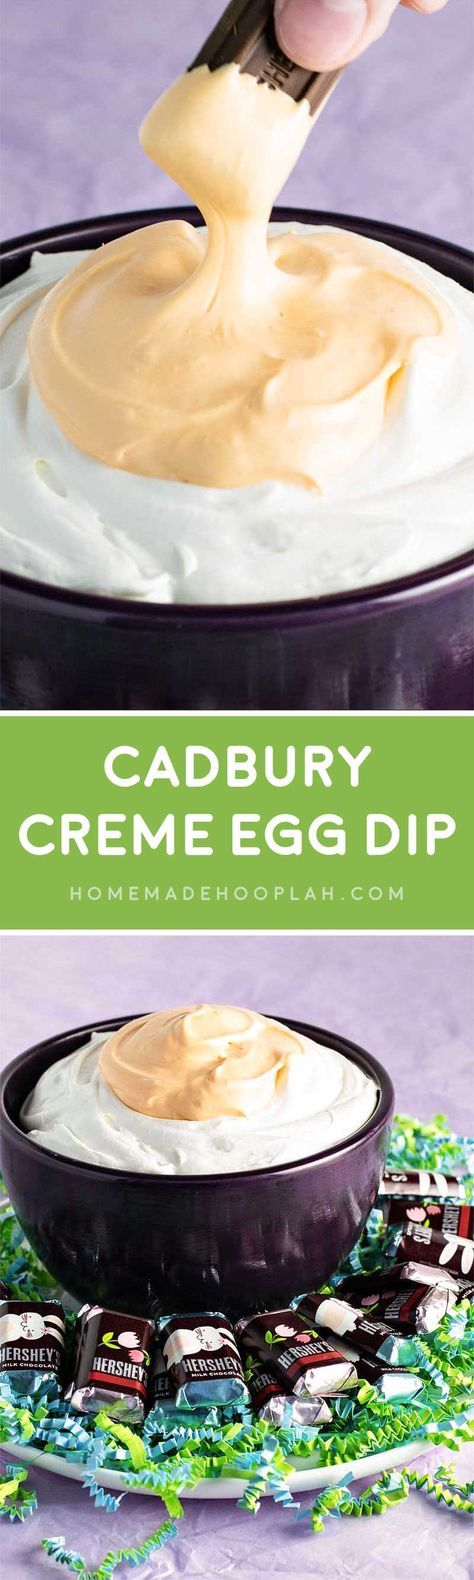 Cadbury Creme Egg Dip! If you love Cadbury Creme Eggs, you'll love this dip! Sweet and sticky, just like the candy, it's the best way to share creme eggs with everyone!